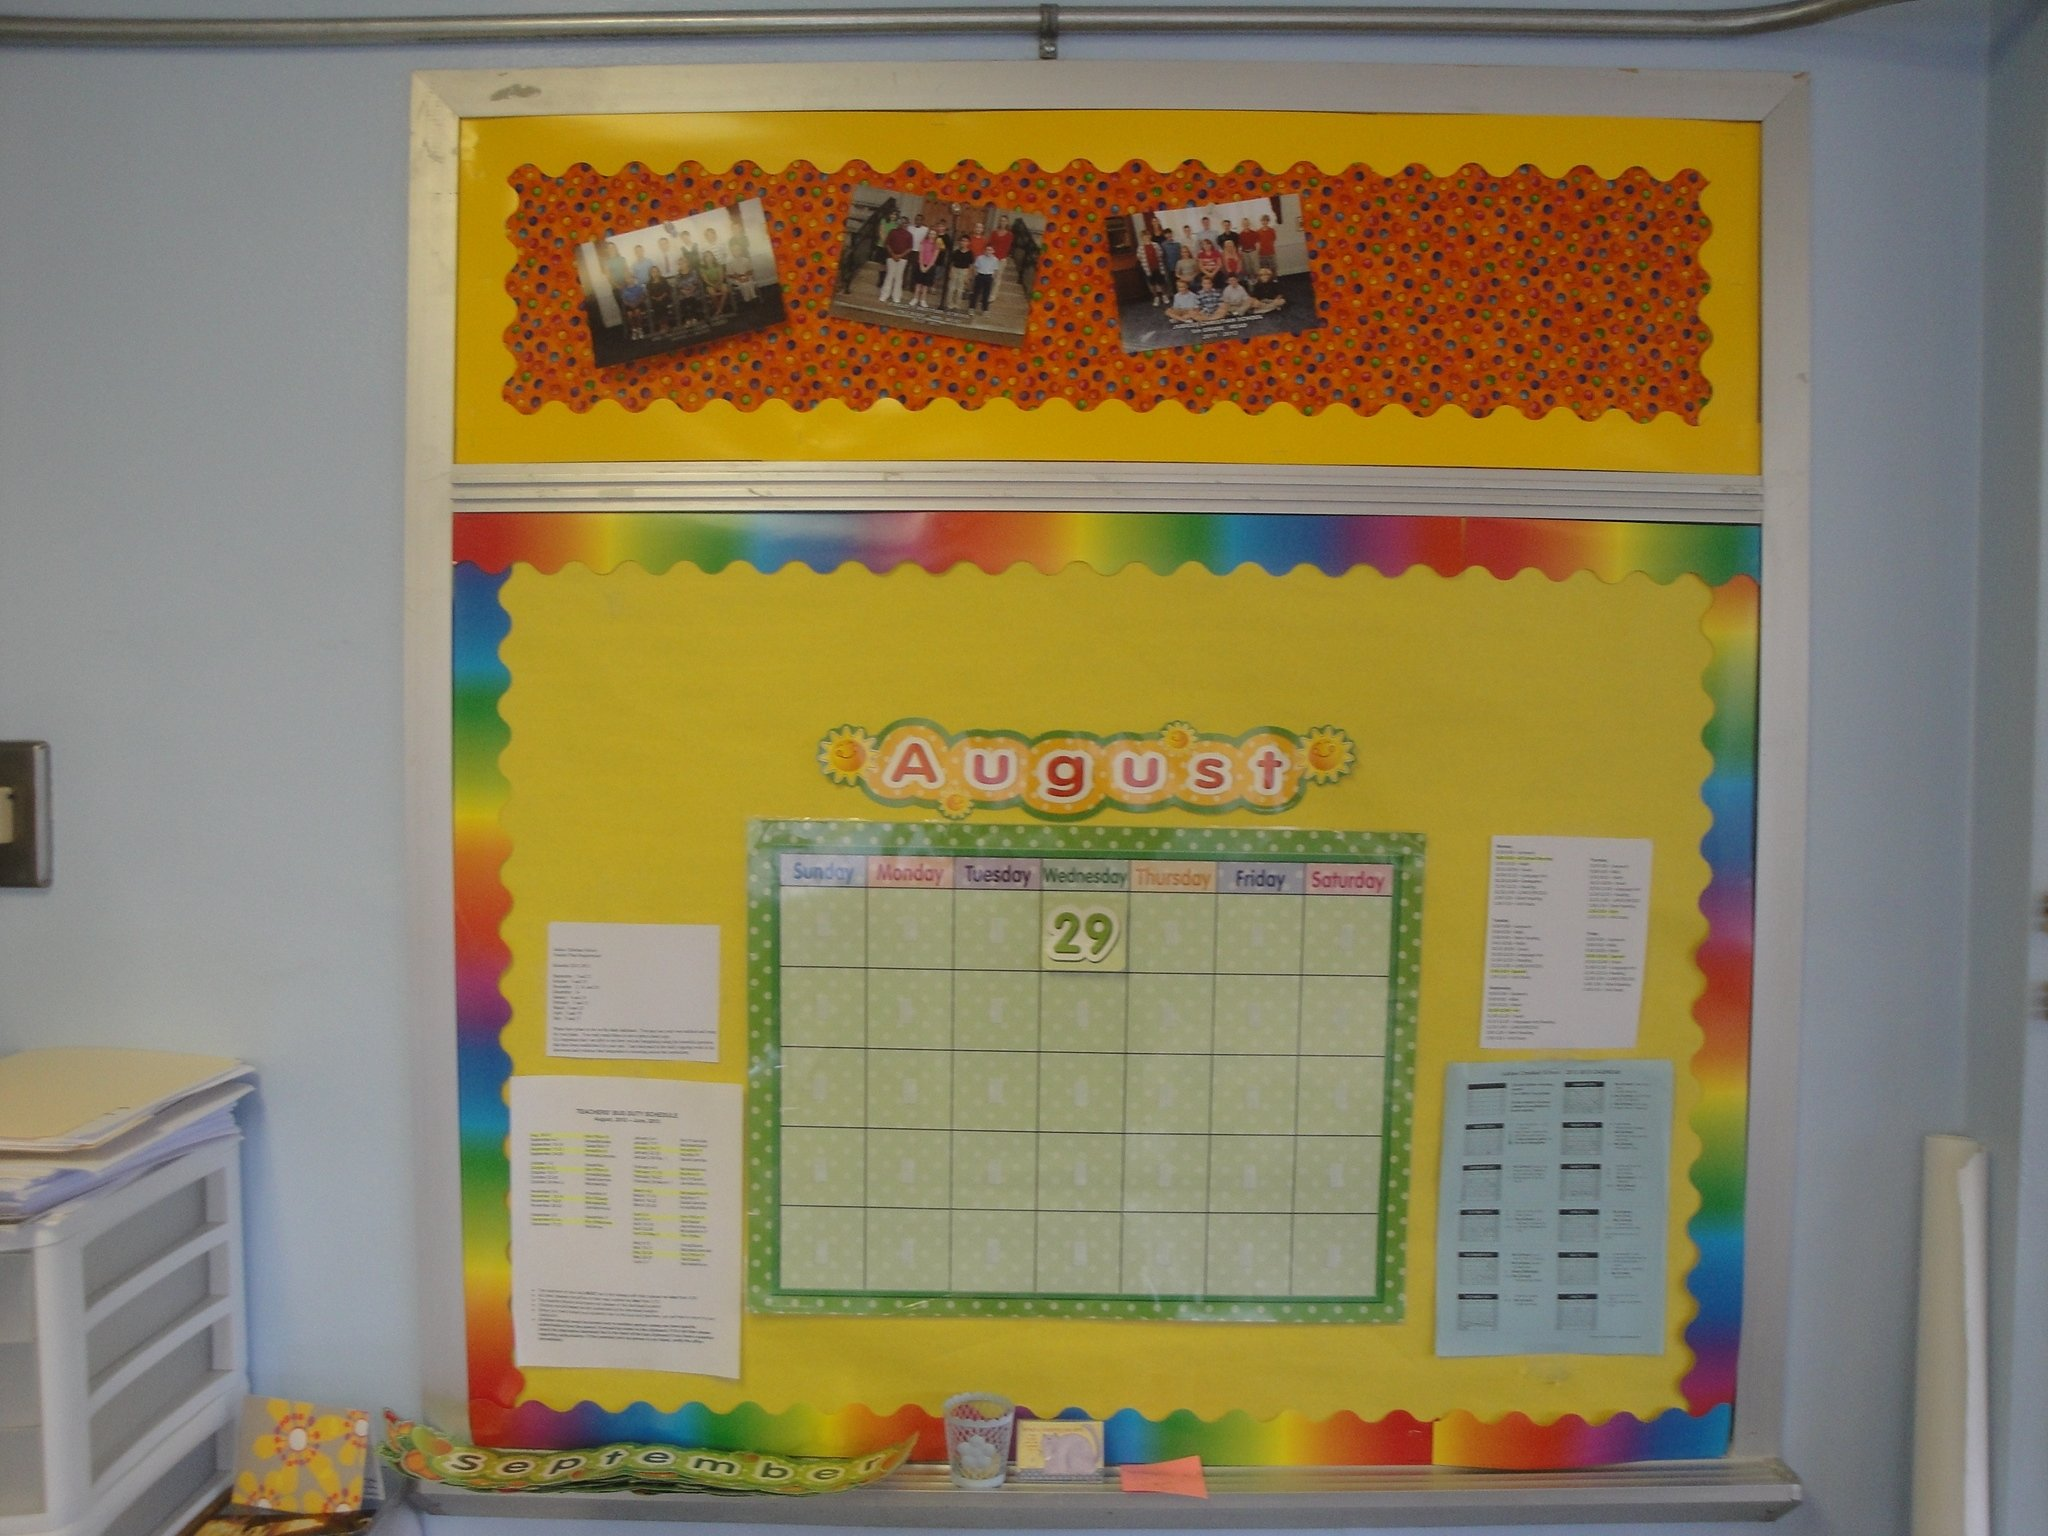 10 Amazing Fifth Grade Bulletin Board Ideas bulletin boards fun in fifth grade at jcs 2020